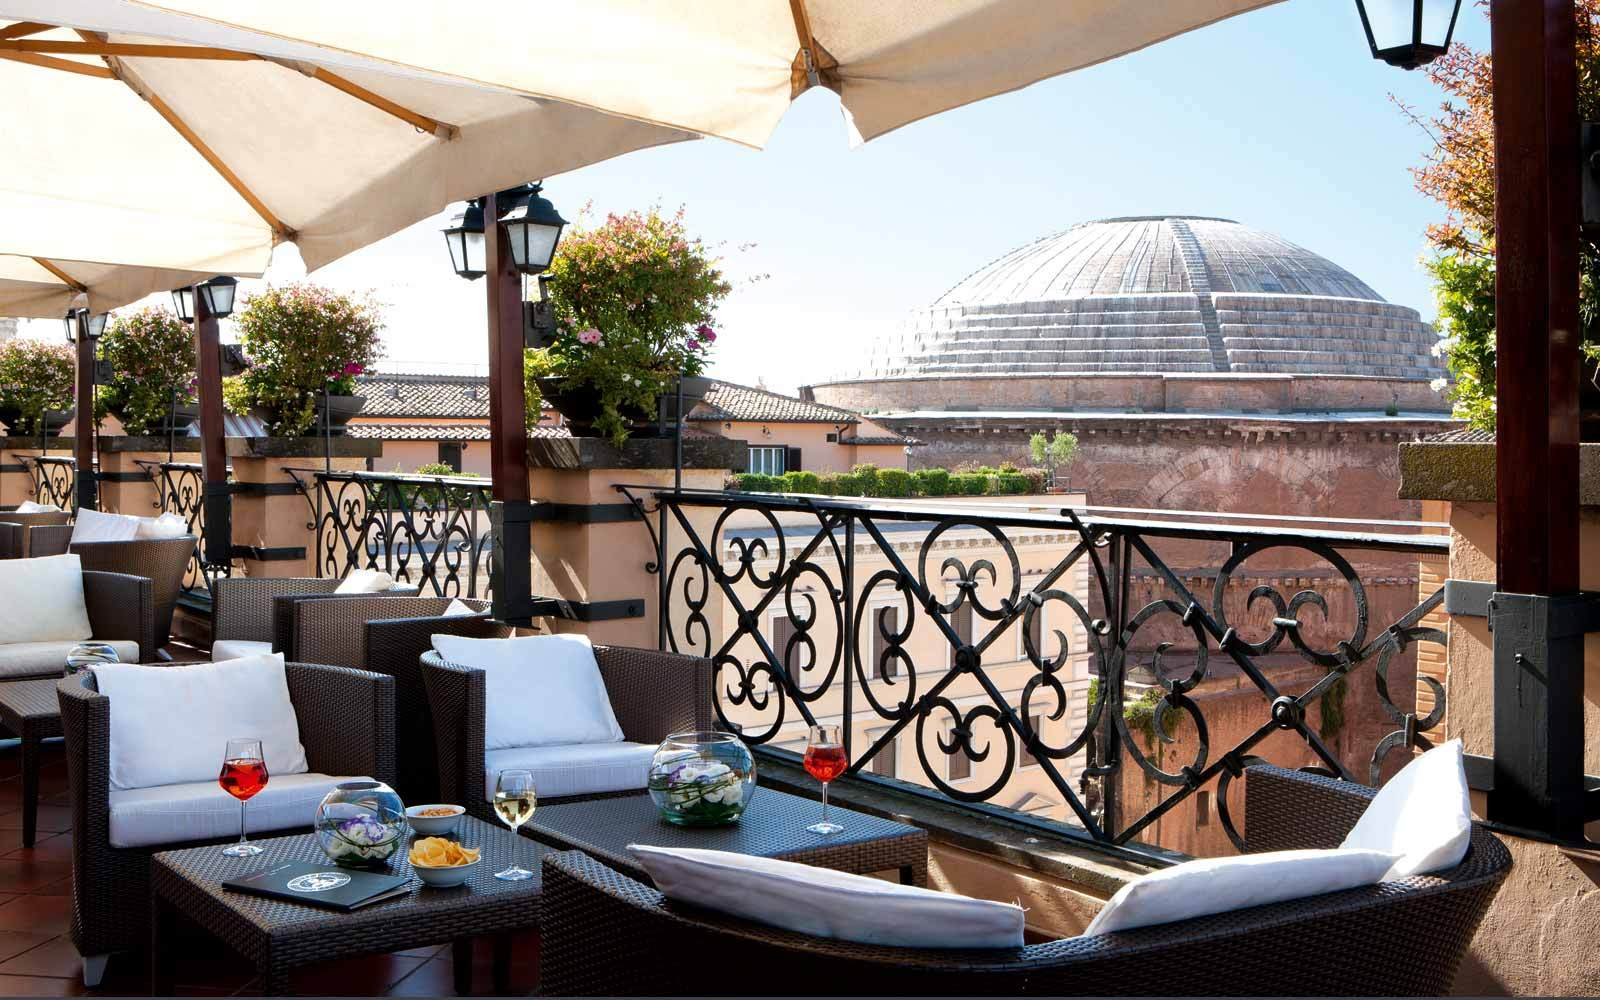 Minerva Roof Garden Restaurant In Rome